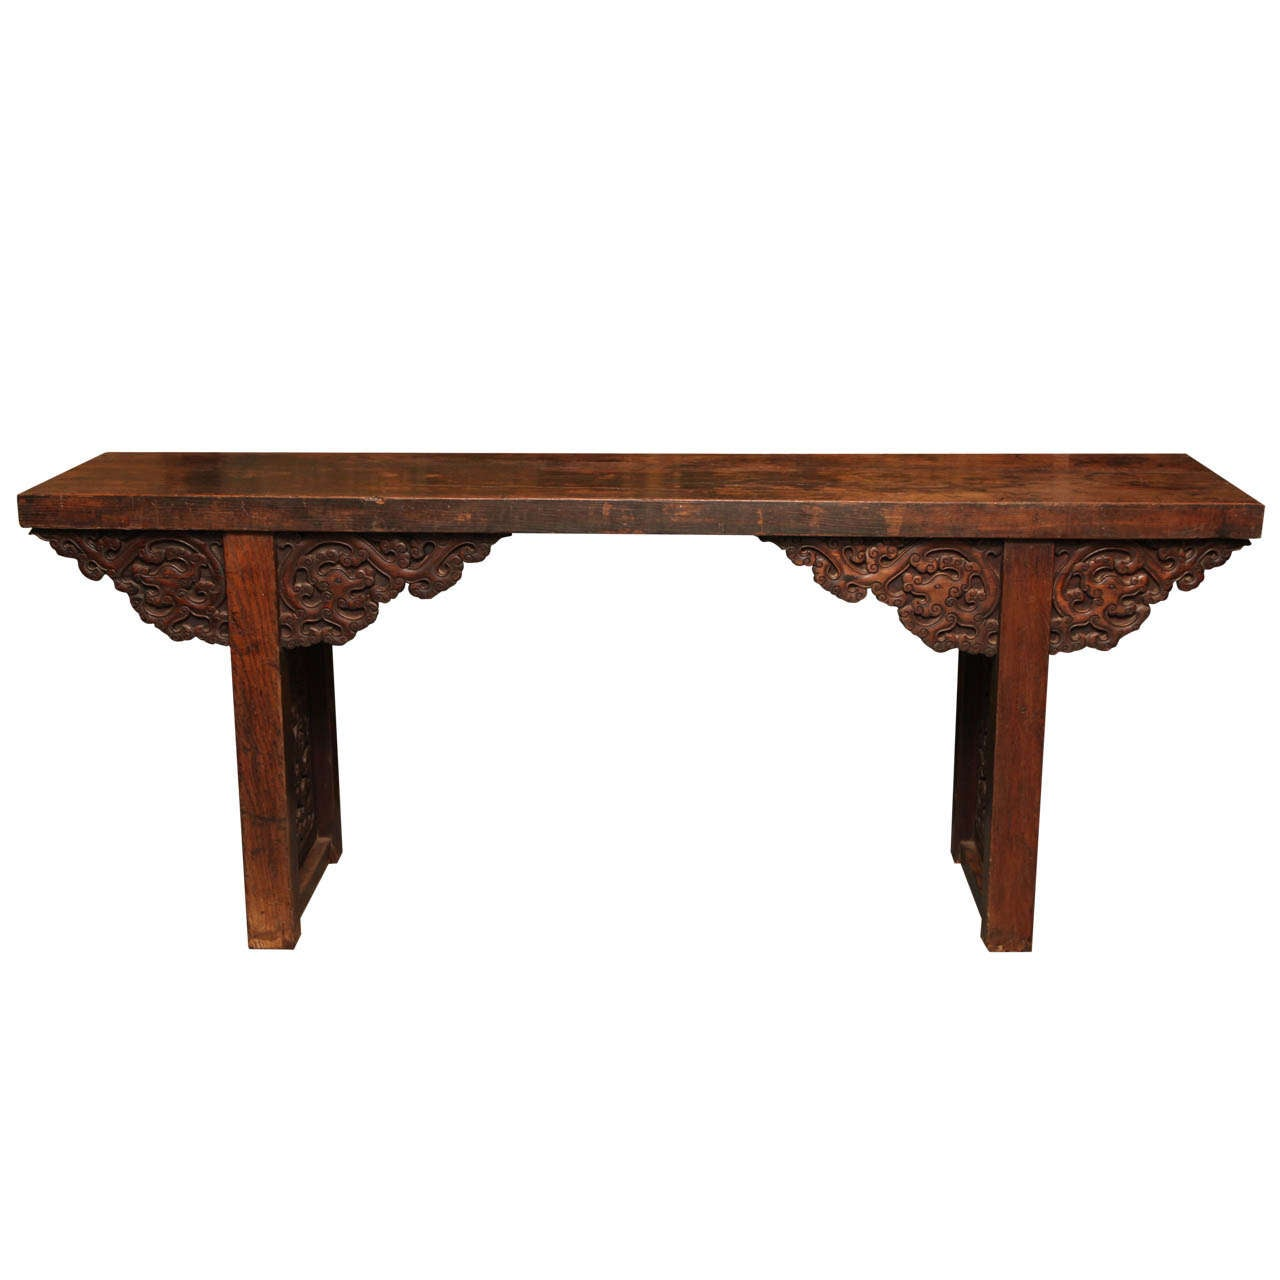 Large Antique Chinese Palace Altar Table with Carvings from the 19th Century